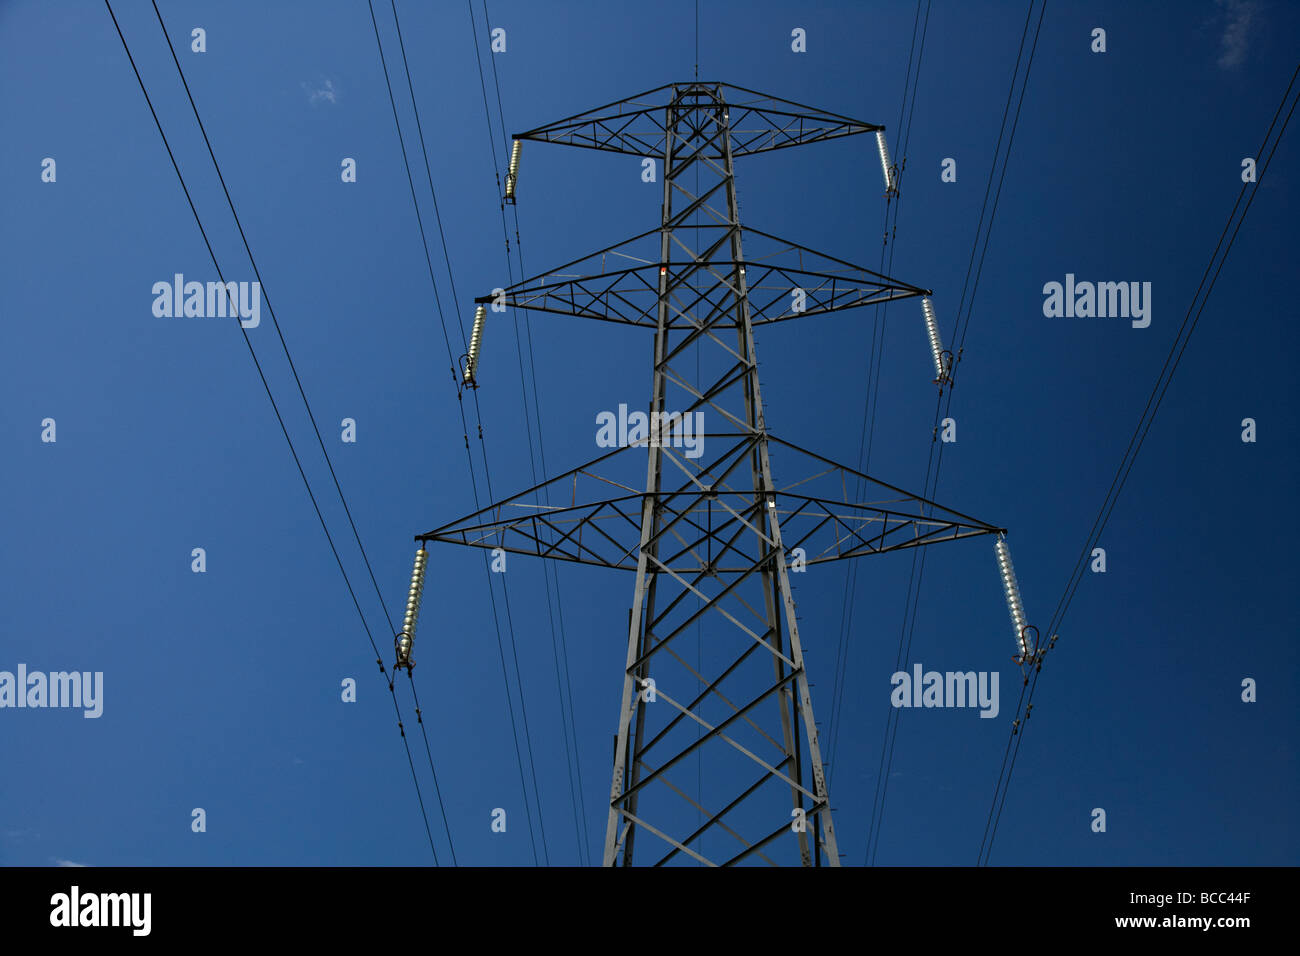 Pylon Ireland High Resolution Stock Photography And Images Alamy